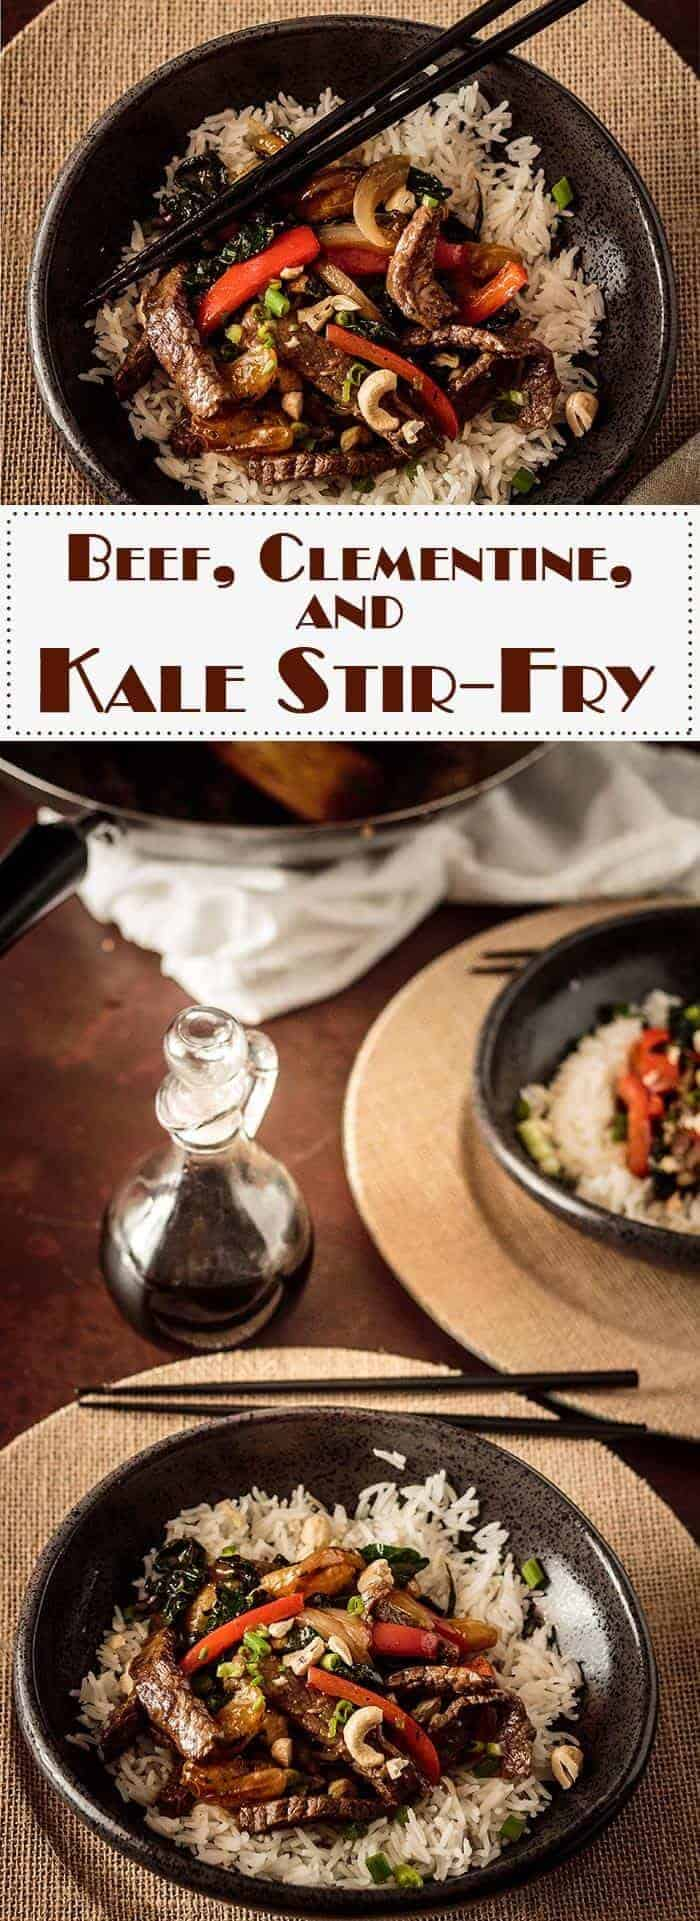 Tender beef, sweet clementines, greens, red pepper, sweet onion, and cashews bathe in a flavorful sauce of sesame, ginger, garlic, rice wine and mirin, tamari, and sriracha in this simple Beef, Clementine, and Tuscan Kale Stir-Fry. #stirfry #beefstirfry #kalestirfry #savoryclementinesdishes #Asianstirfry  #beefandkale